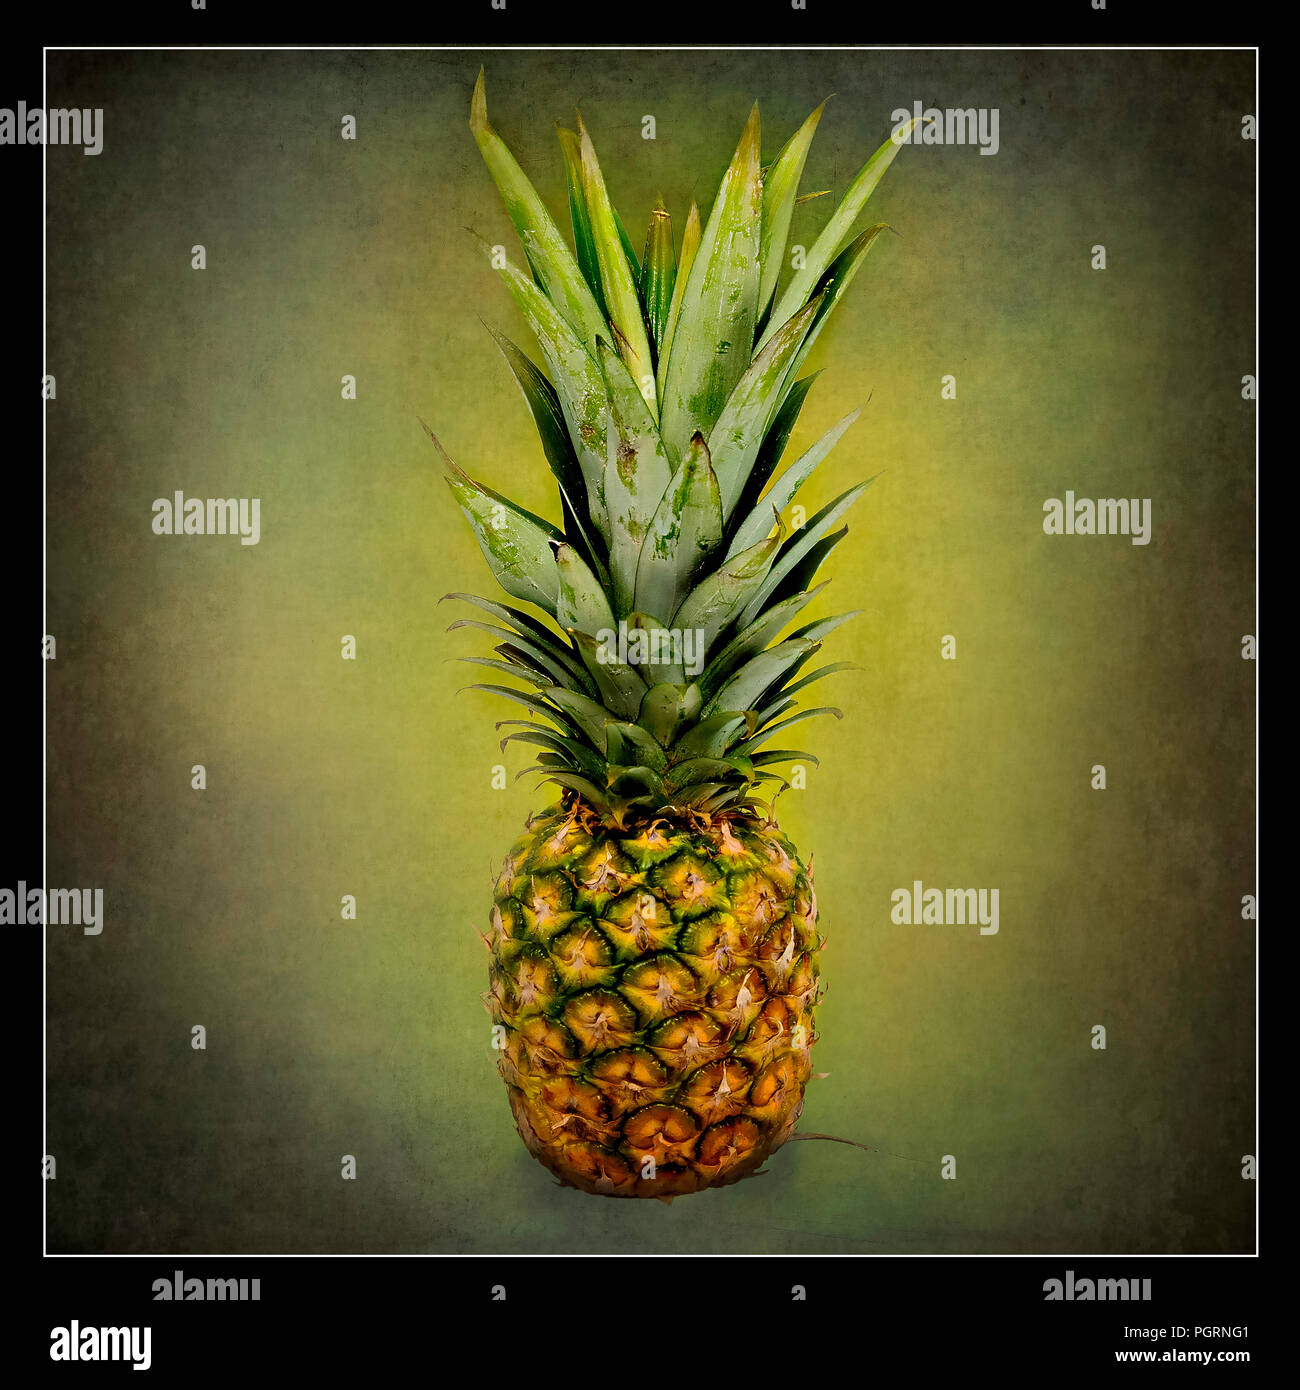 Picture of a pineapple - Stock Image